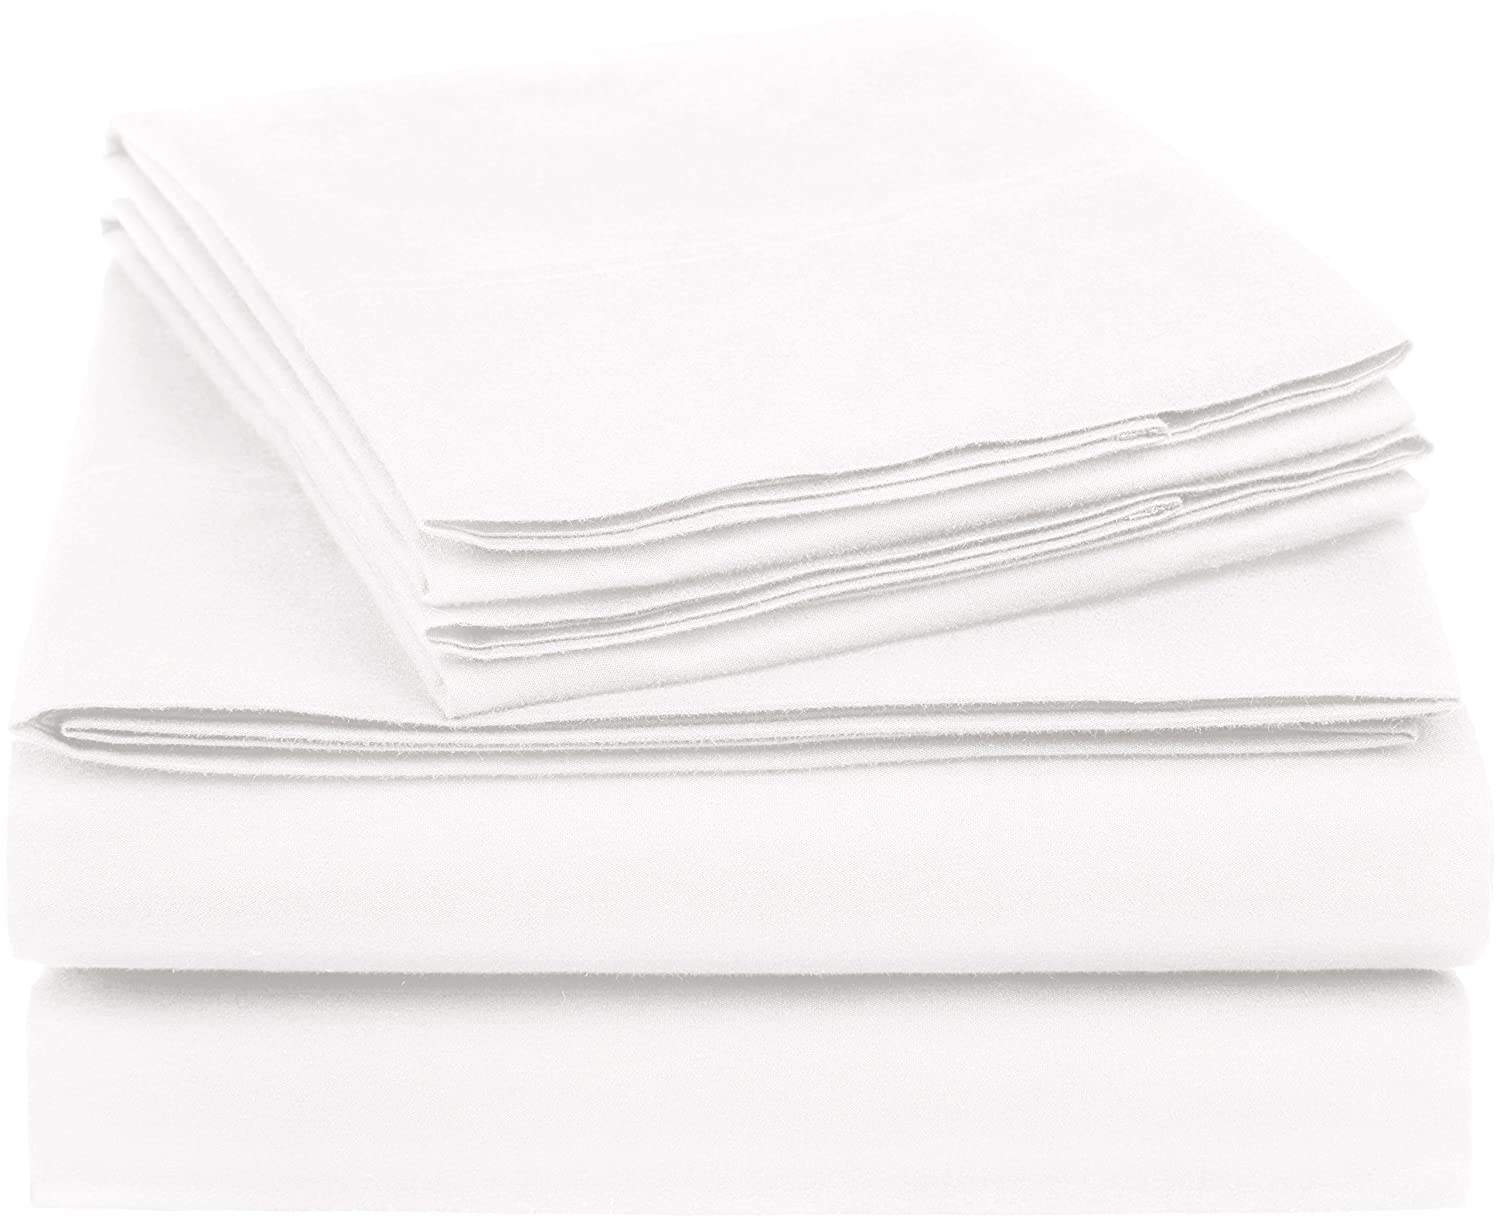 AmazonBasics Essential Cotton Blend Sheet Set -Queen, White